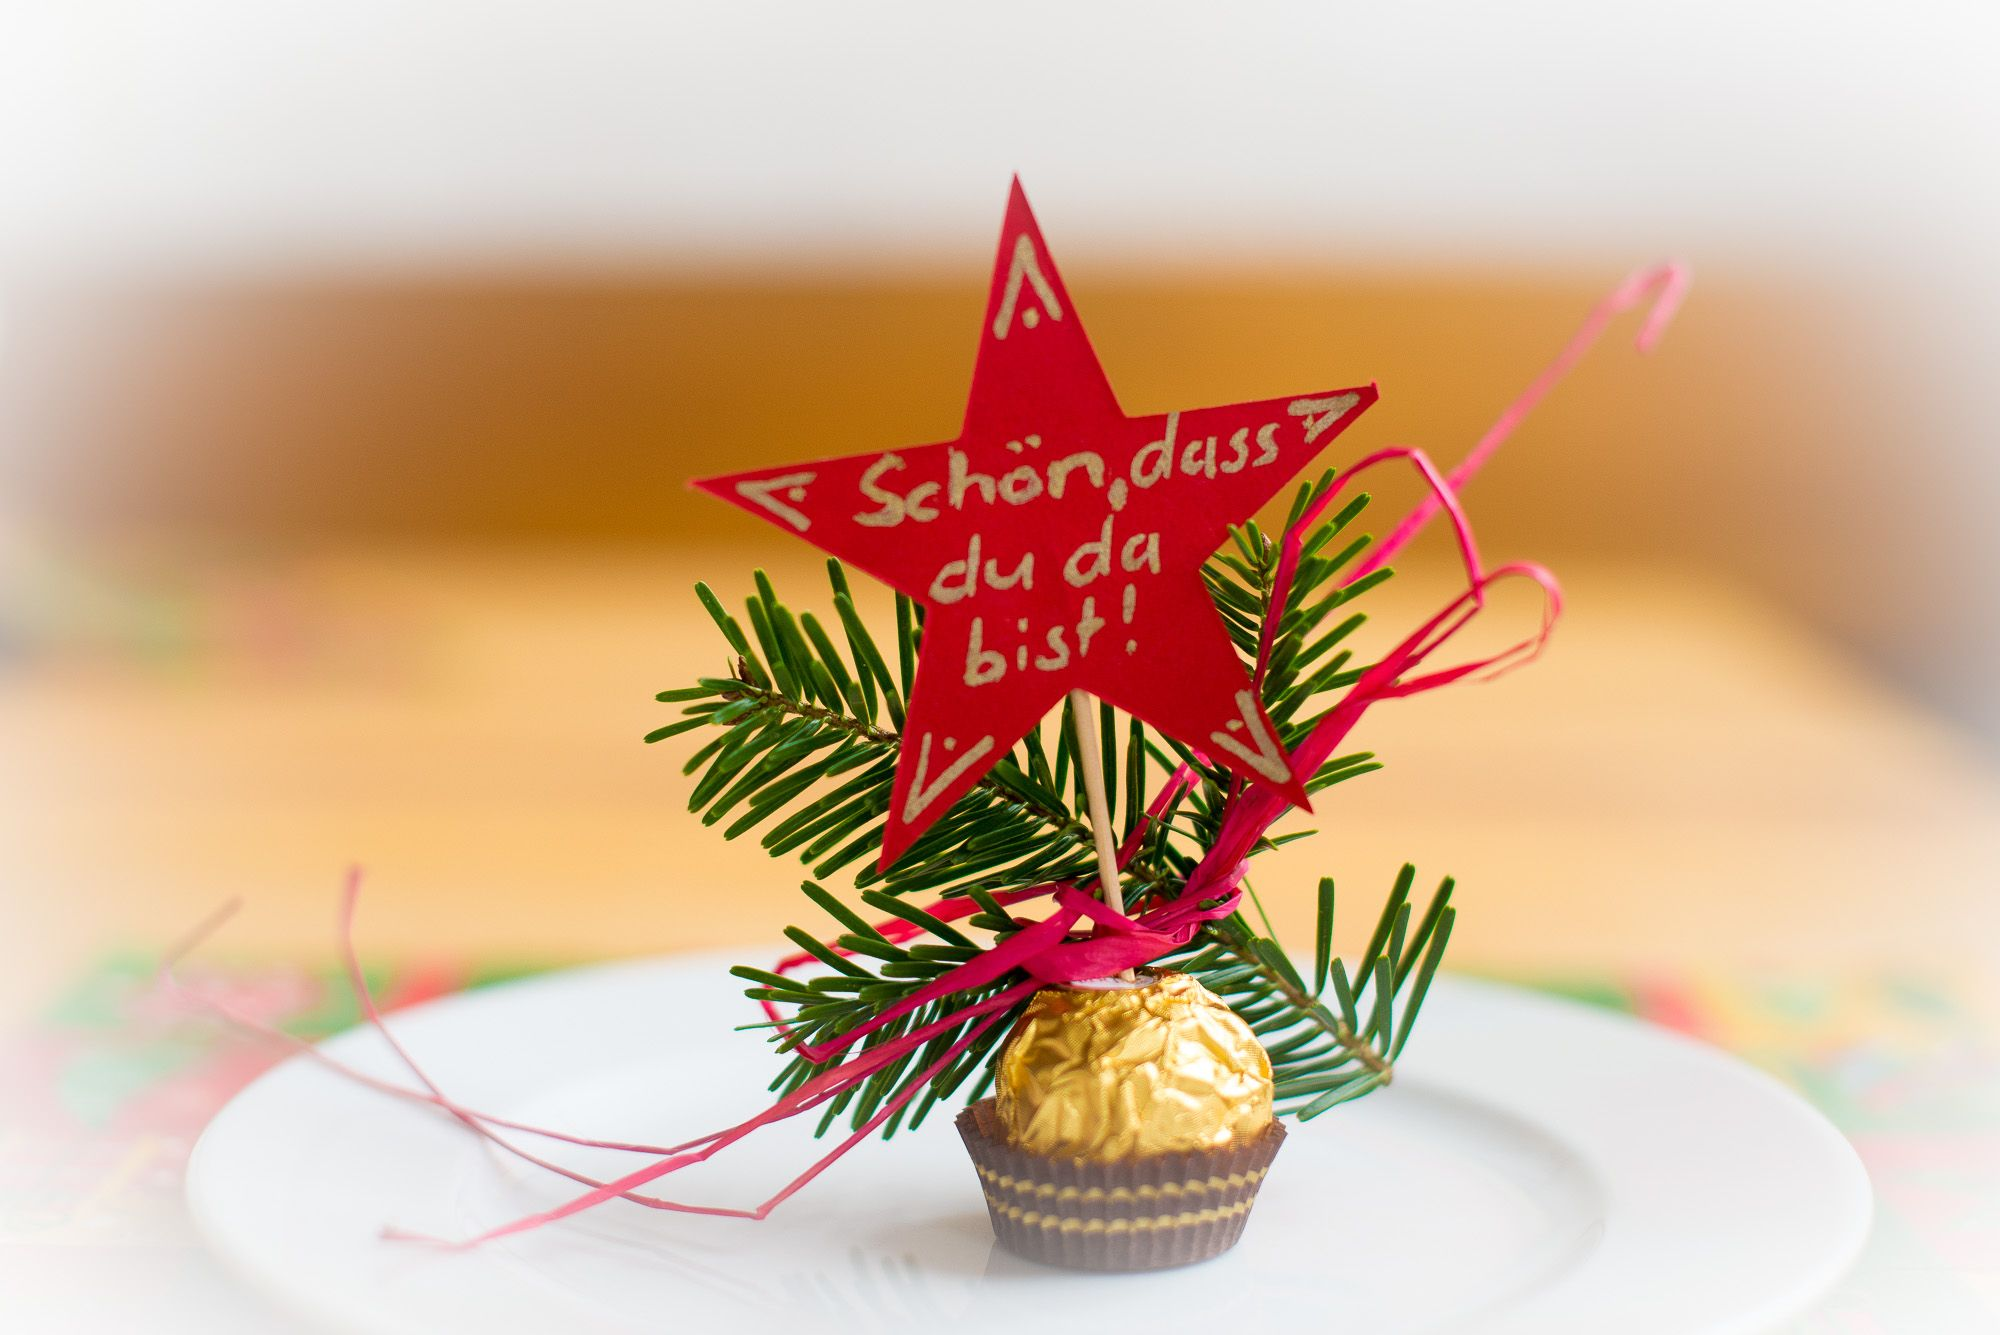 Diy Tischdeko Advent Weihnachten Fr Hst Ck Homemade